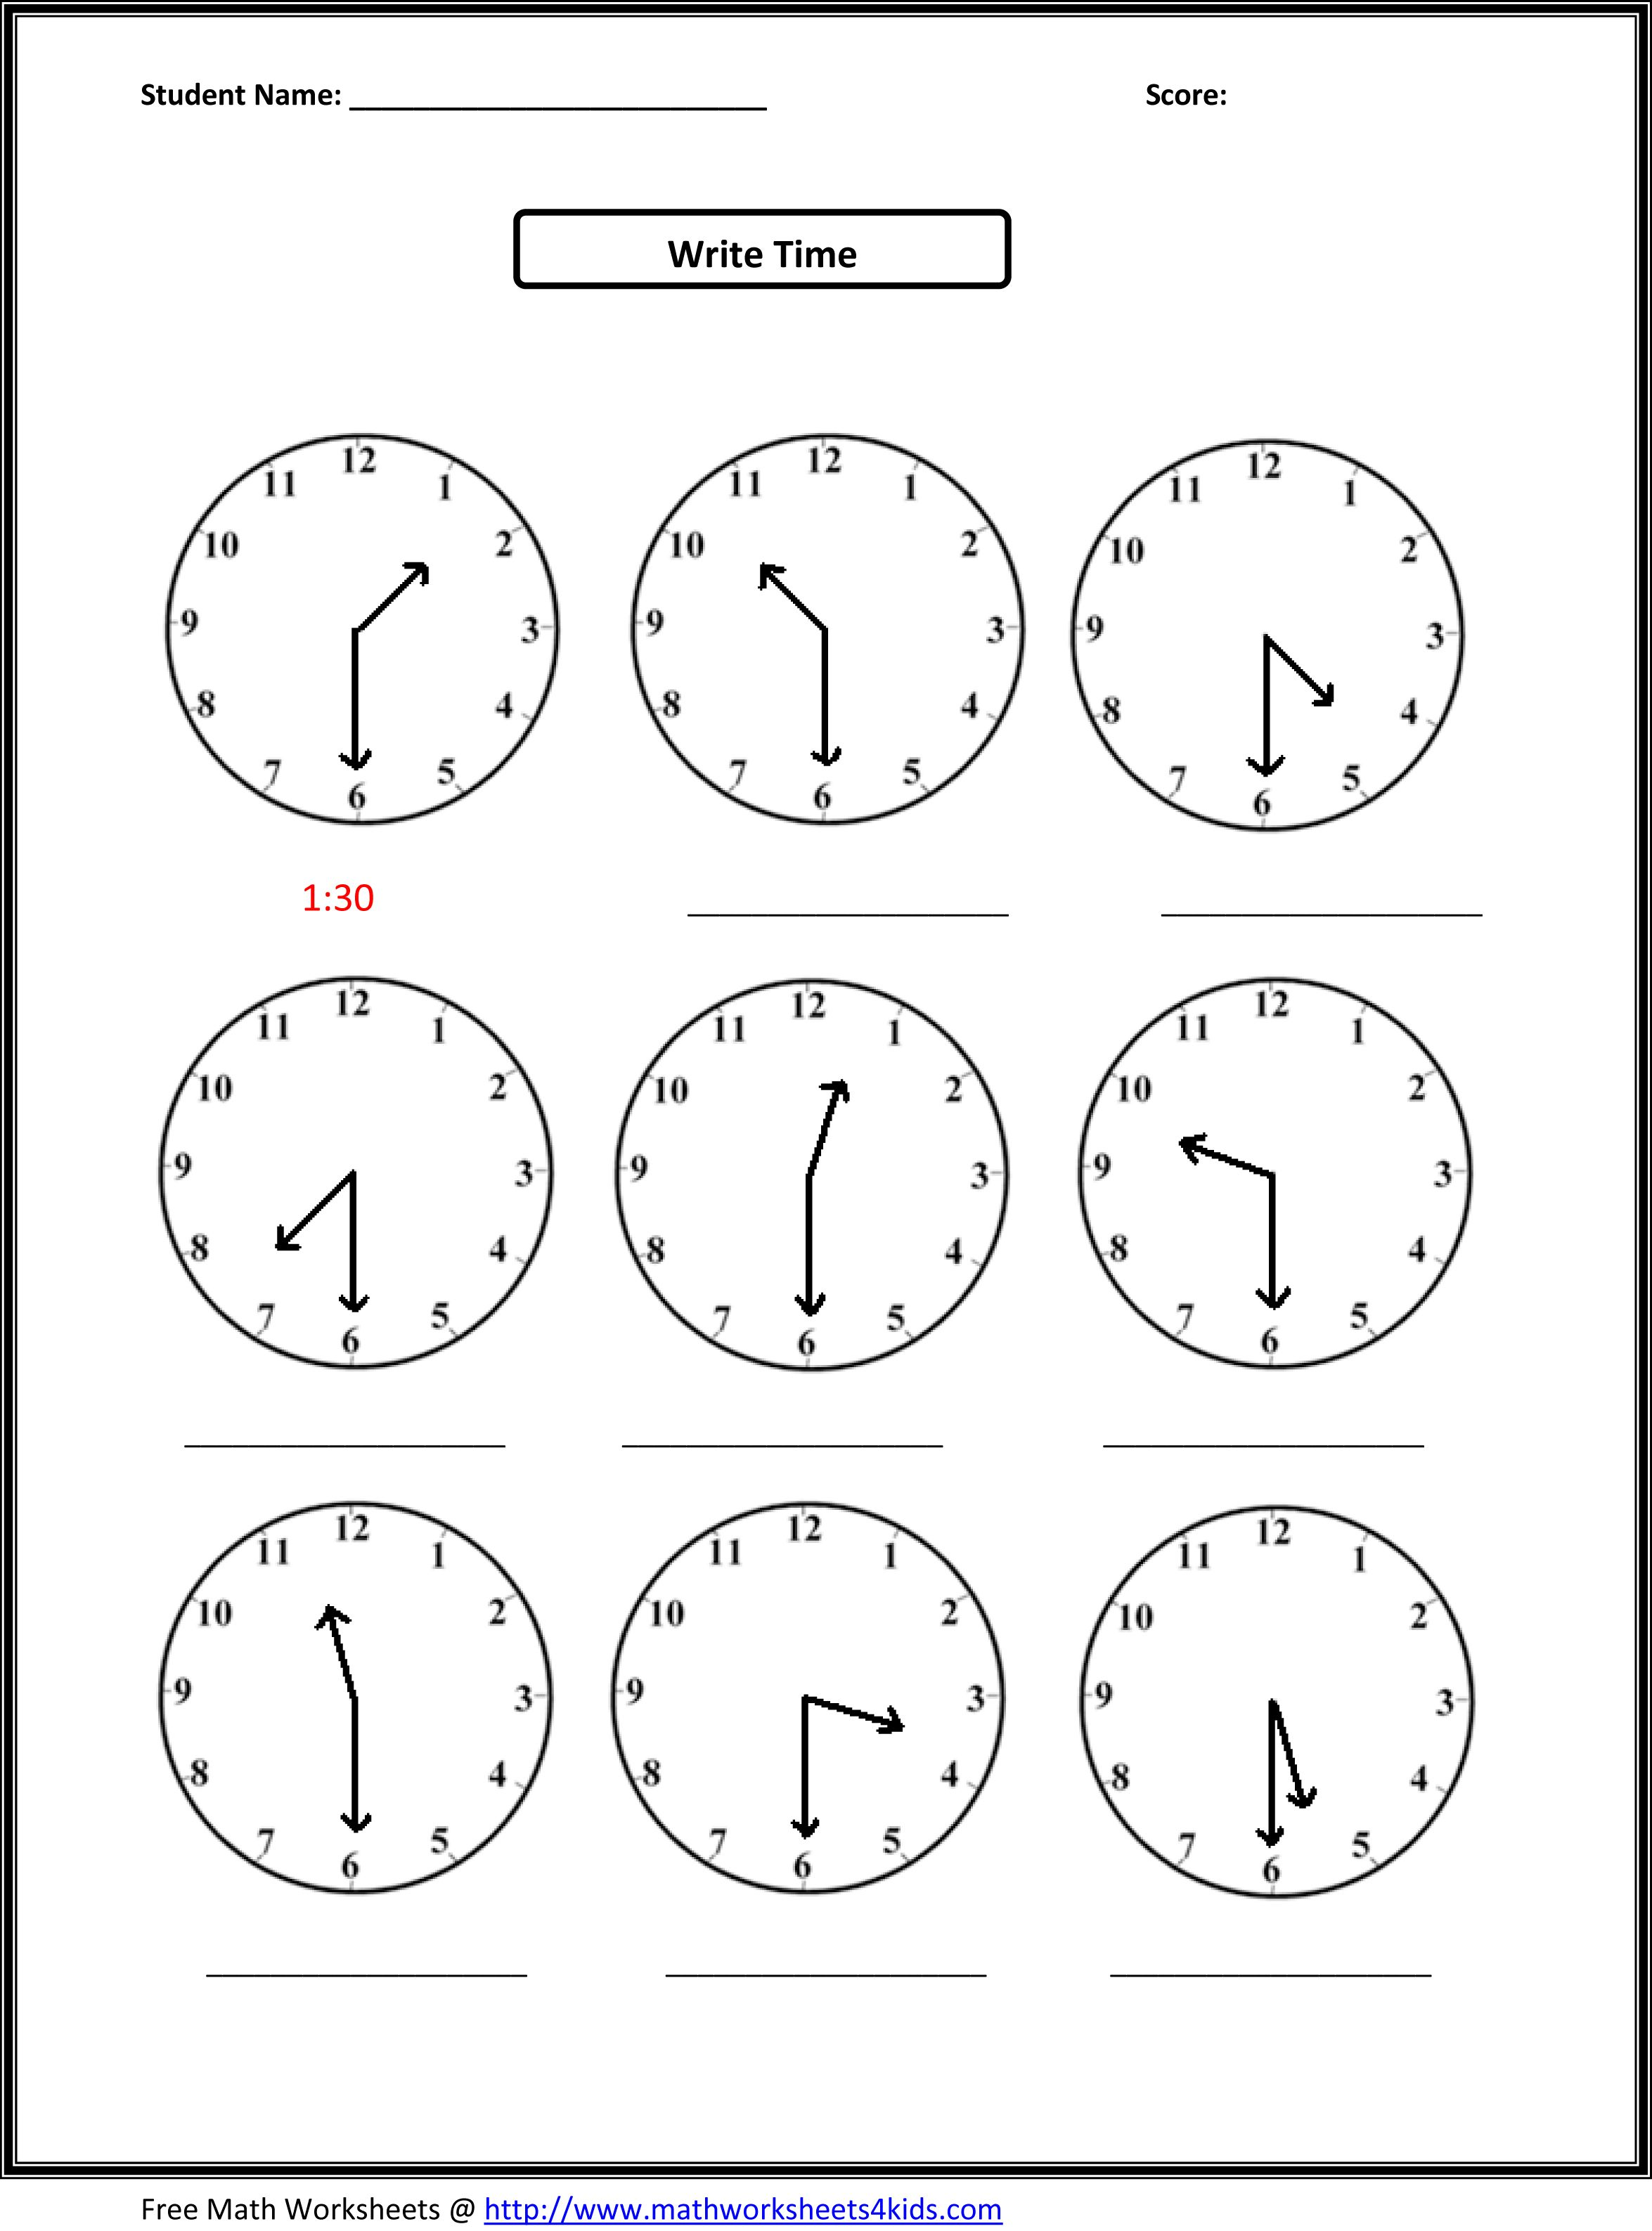 Weirdmailus  Wonderful Worksheet On Time For Grade   Reocurent With Entrancing Free Printable Telling Time Worksheets Nd Grade  Reocurent With Appealing Adding And Subtracting Mixed Numbers Worksheets Also Reality Therapy Worksheets For Children In Addition Mixed Operations Worksheets And Patch Adams Movie Worksheet As Well As Language Arts Worksheets First Grade Additionally Land And Water Formations Worksheet From Reocurentcom With Weirdmailus  Entrancing Worksheet On Time For Grade   Reocurent With Appealing Free Printable Telling Time Worksheets Nd Grade  Reocurent And Wonderful Adding And Subtracting Mixed Numbers Worksheets Also Reality Therapy Worksheets For Children In Addition Mixed Operations Worksheets From Reocurentcom